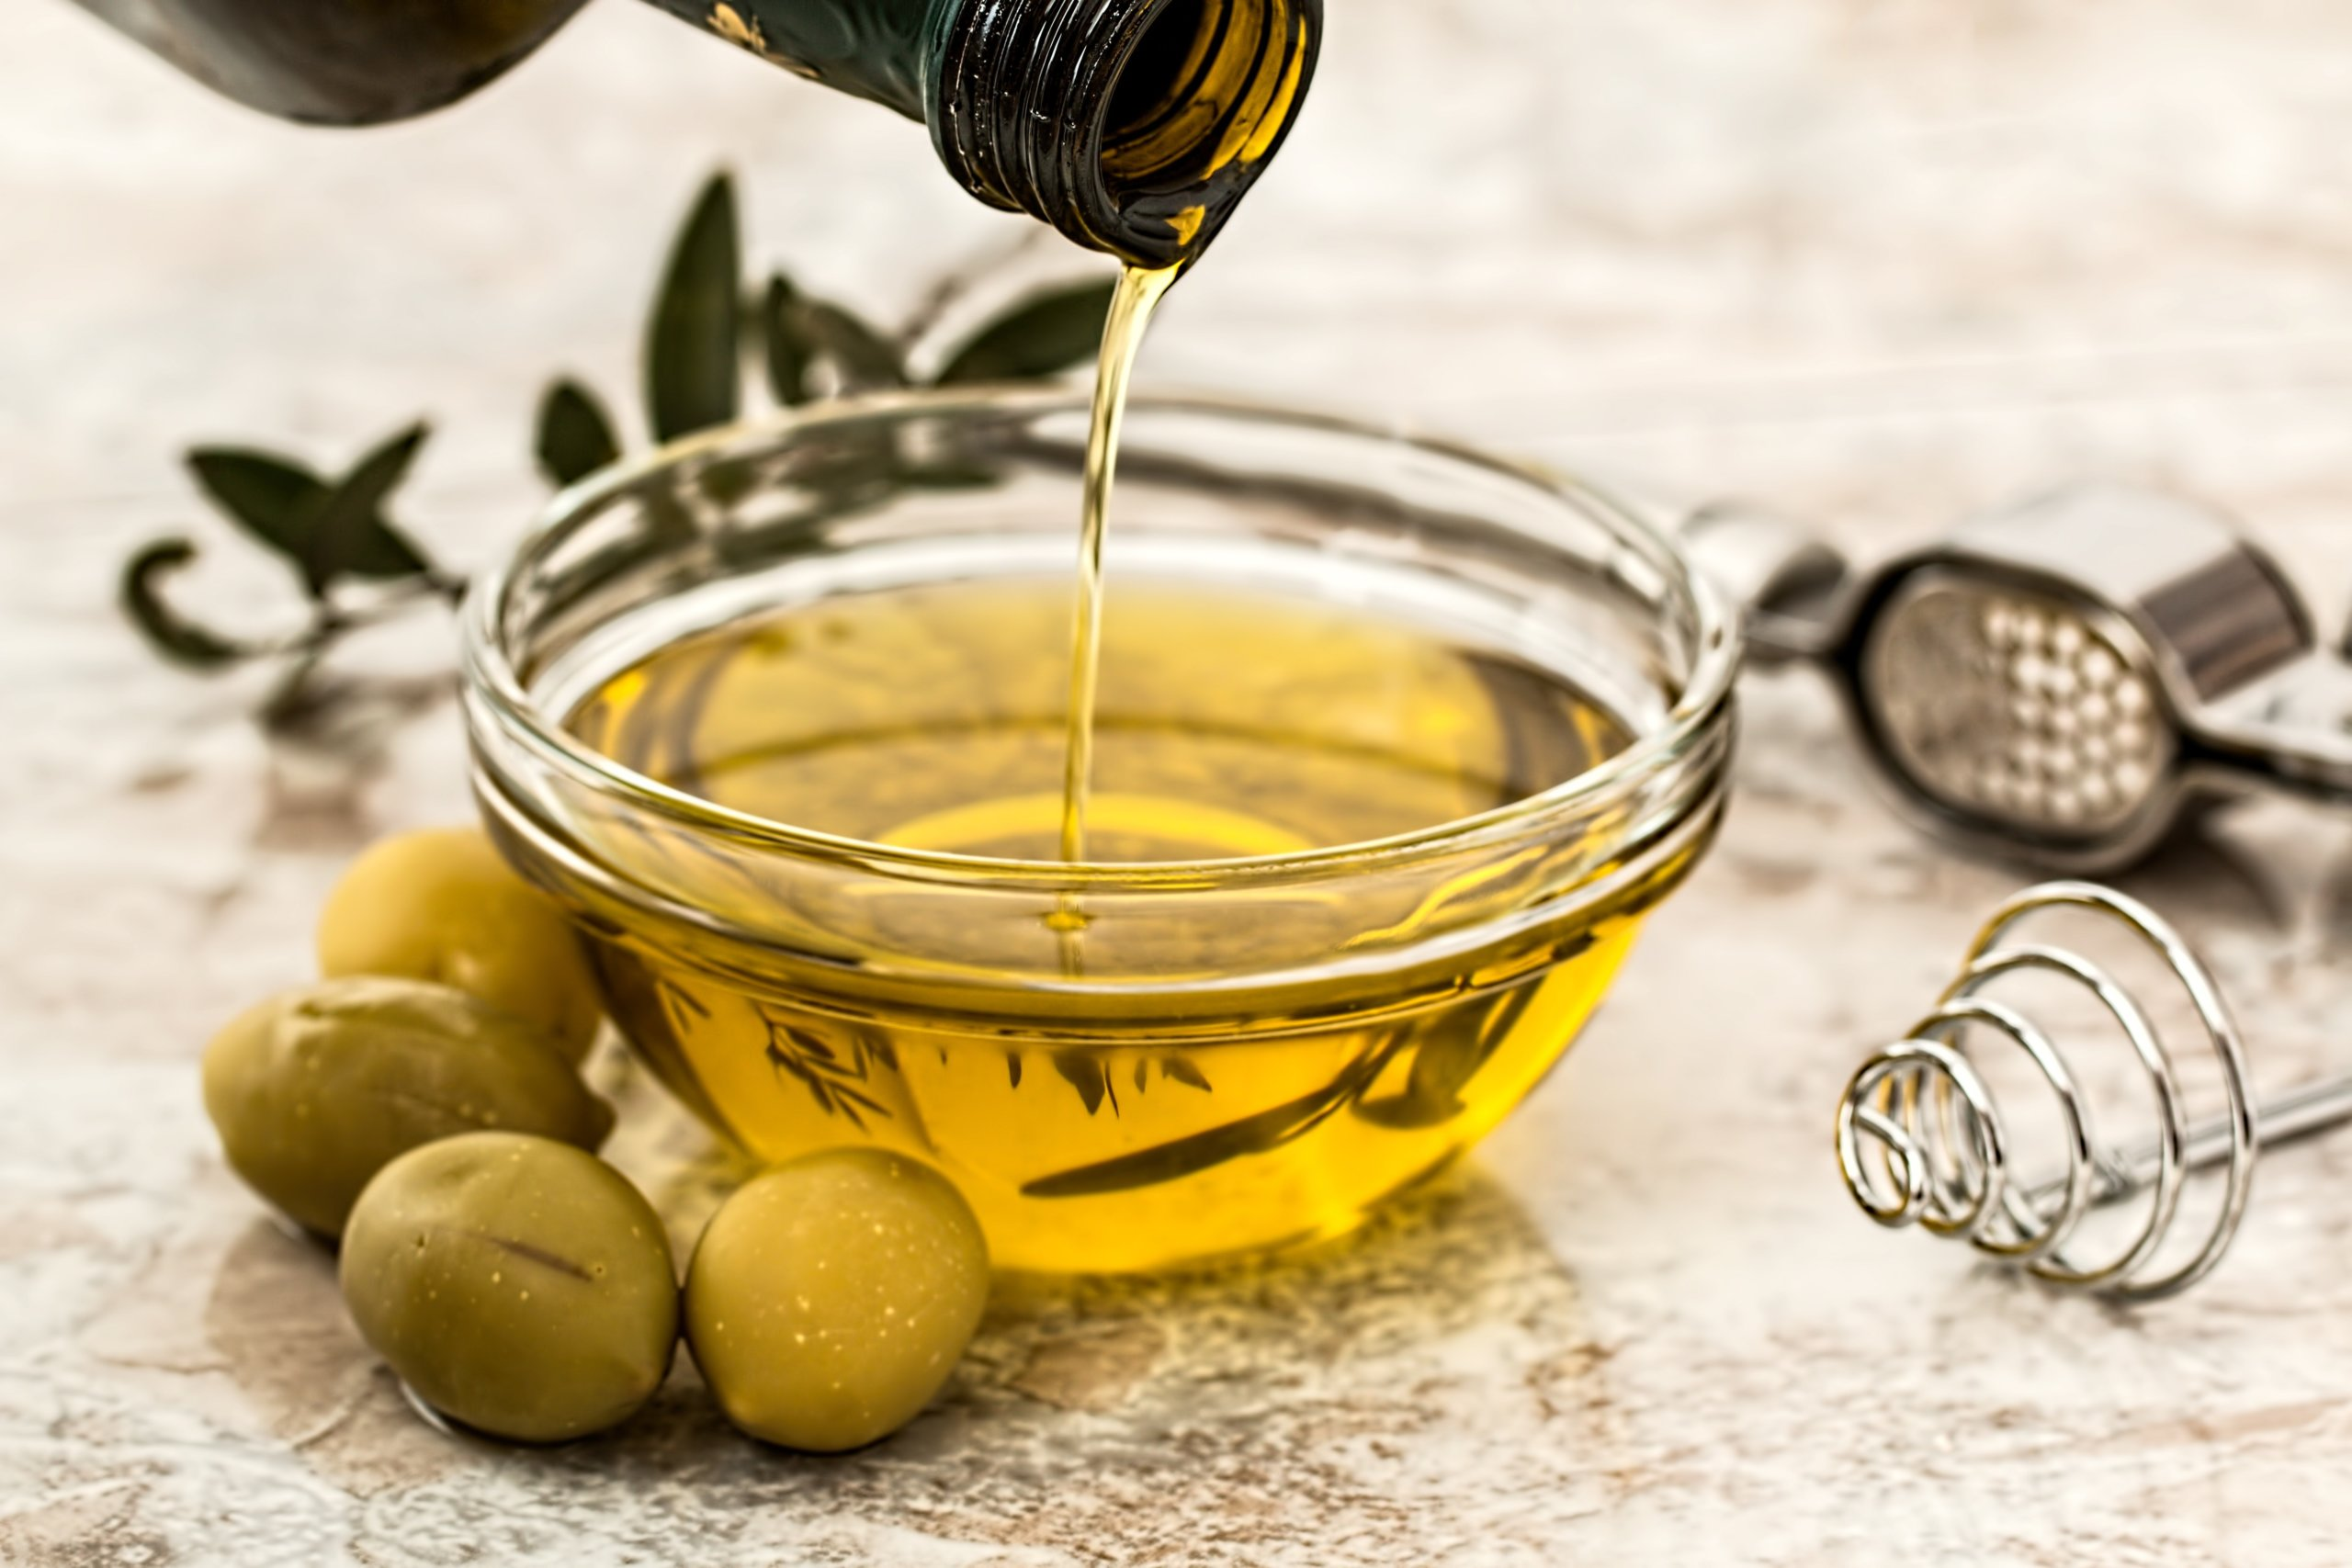 Healthy fat – Olive oil bring poured into small ramekin with olives surrounding the scene